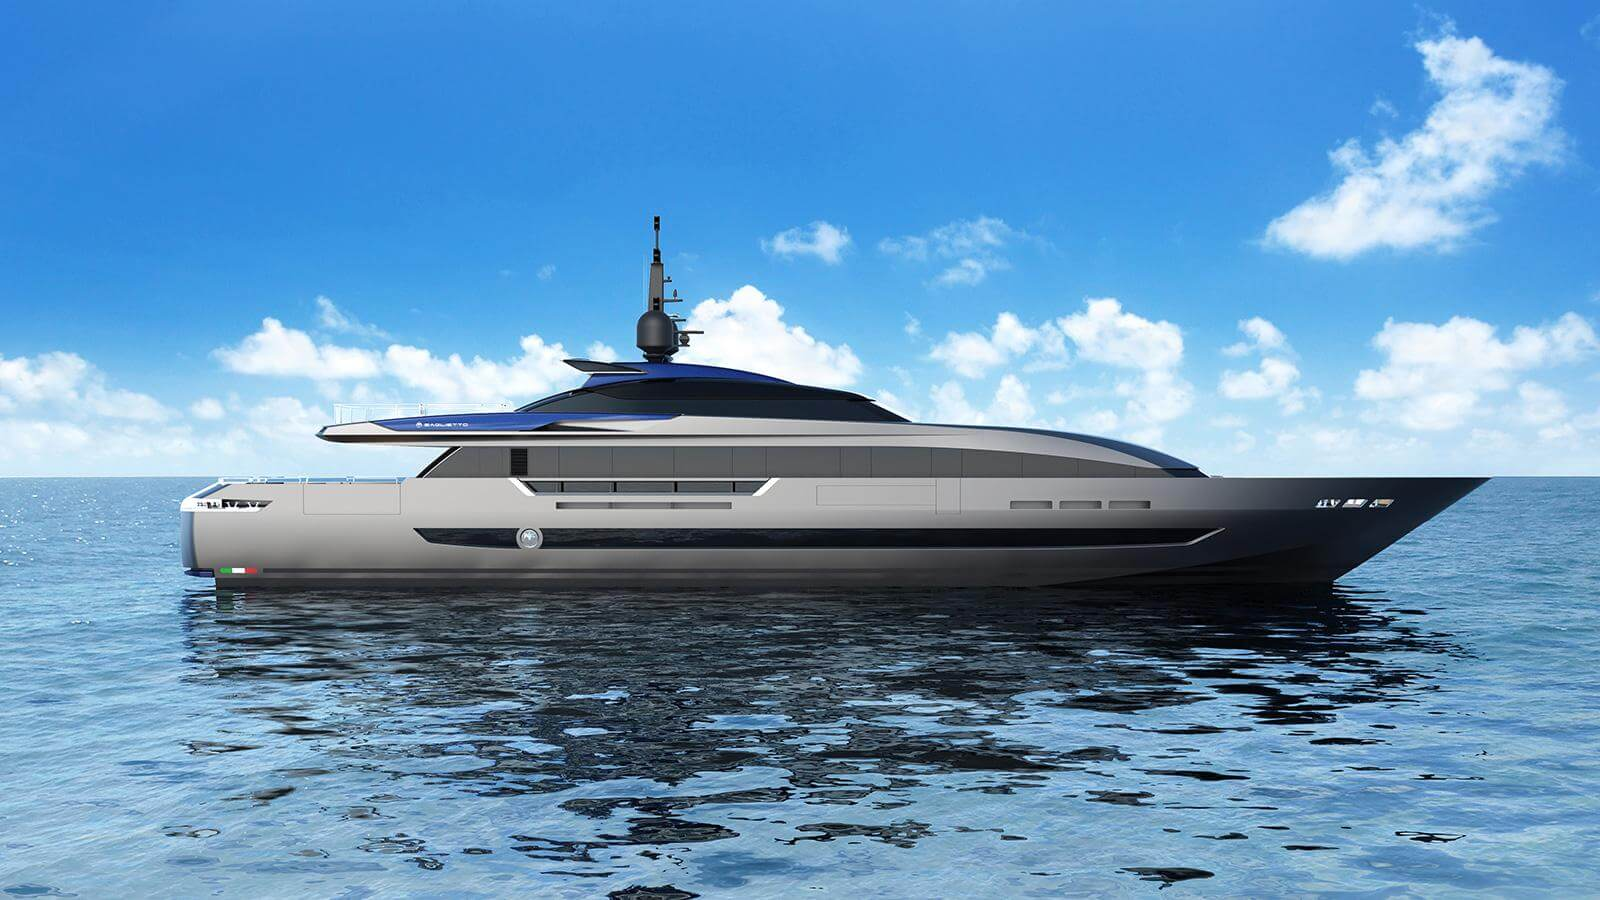 Baglietto 43M Fast Yacht - Side View